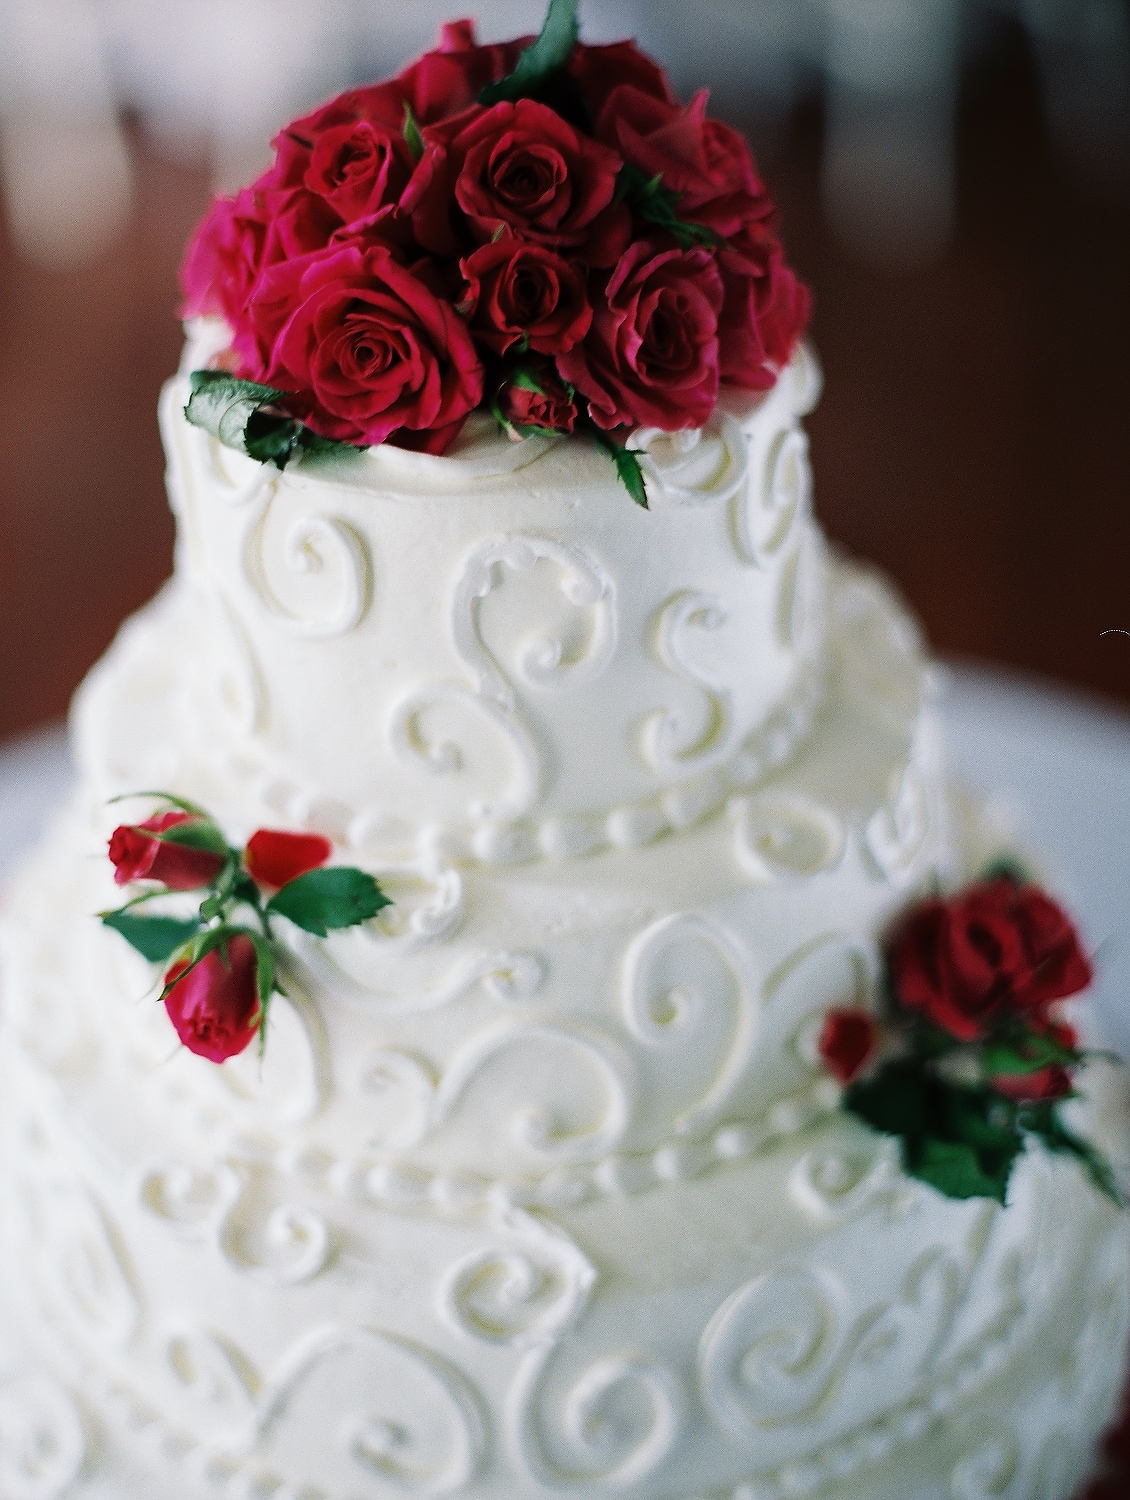 white wedding cake with red roses at highlands country club taken by nyc wedding photographer wendy g